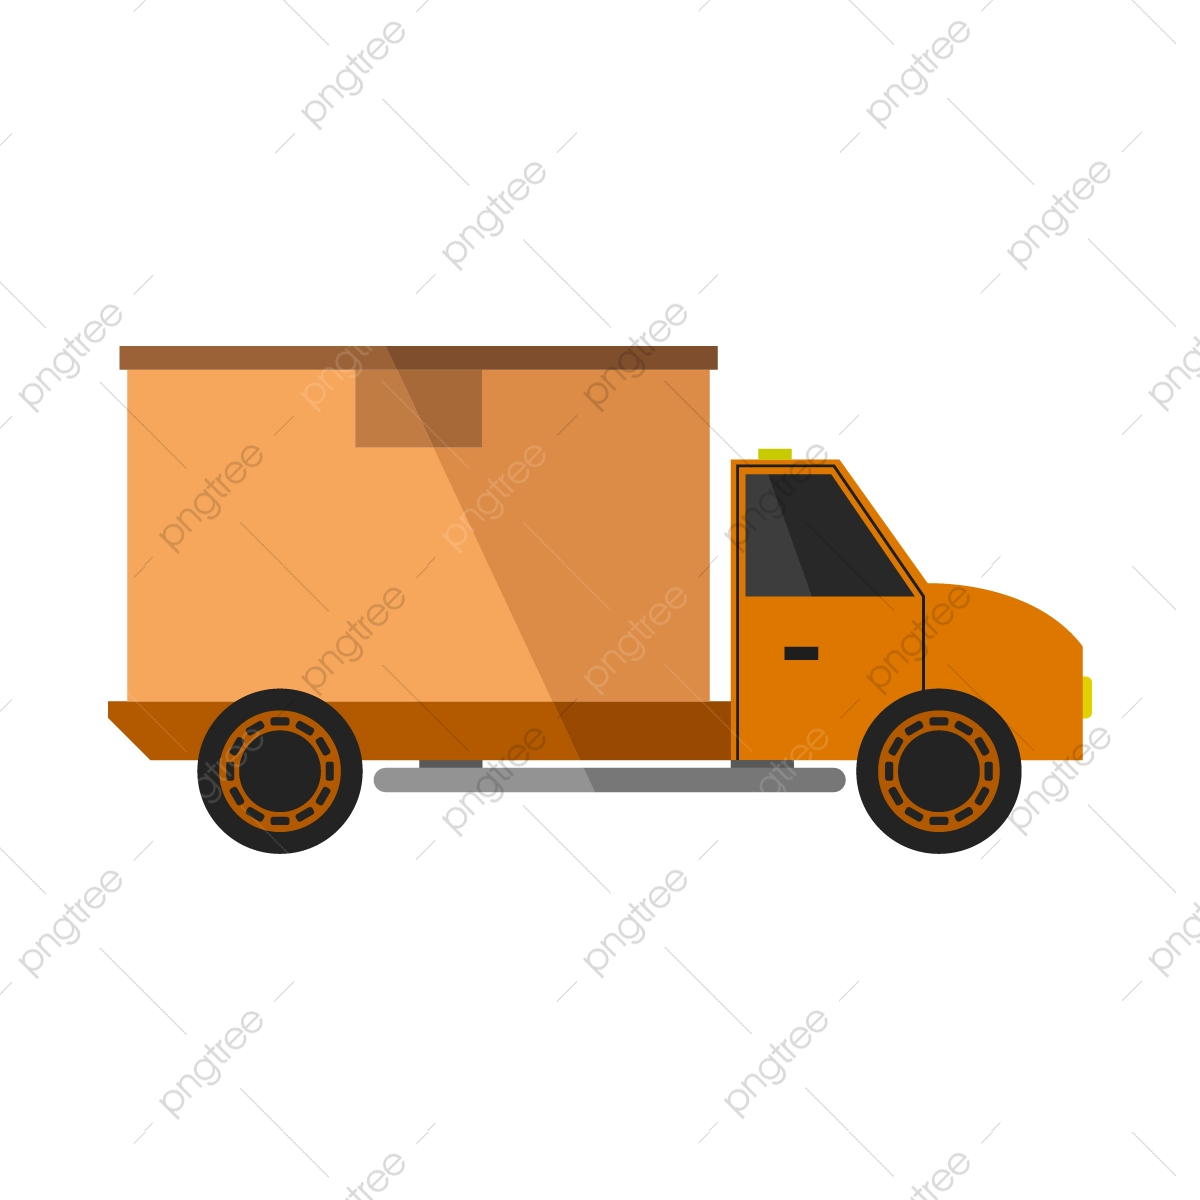 7+ Truck Clipart - Preview : Yellow-semi-trail | HDClipartAll